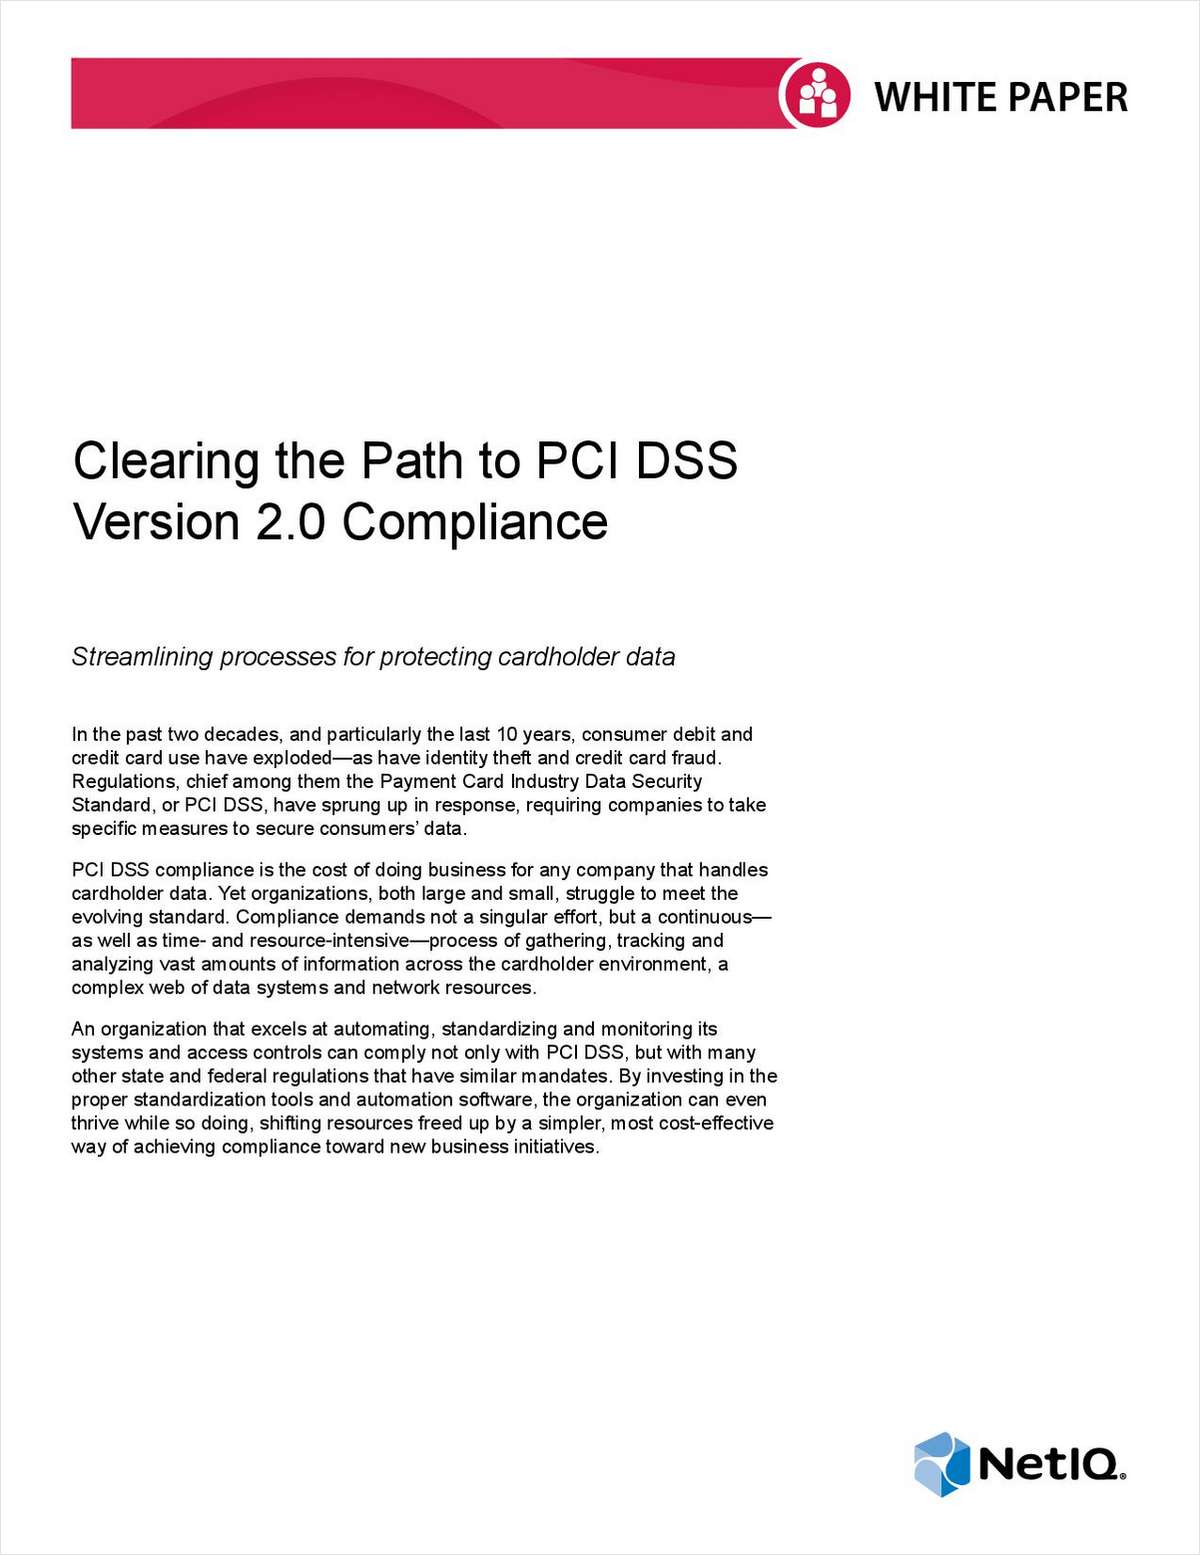 Clearing the Path to PCI DSS Version 2.0 Compliance